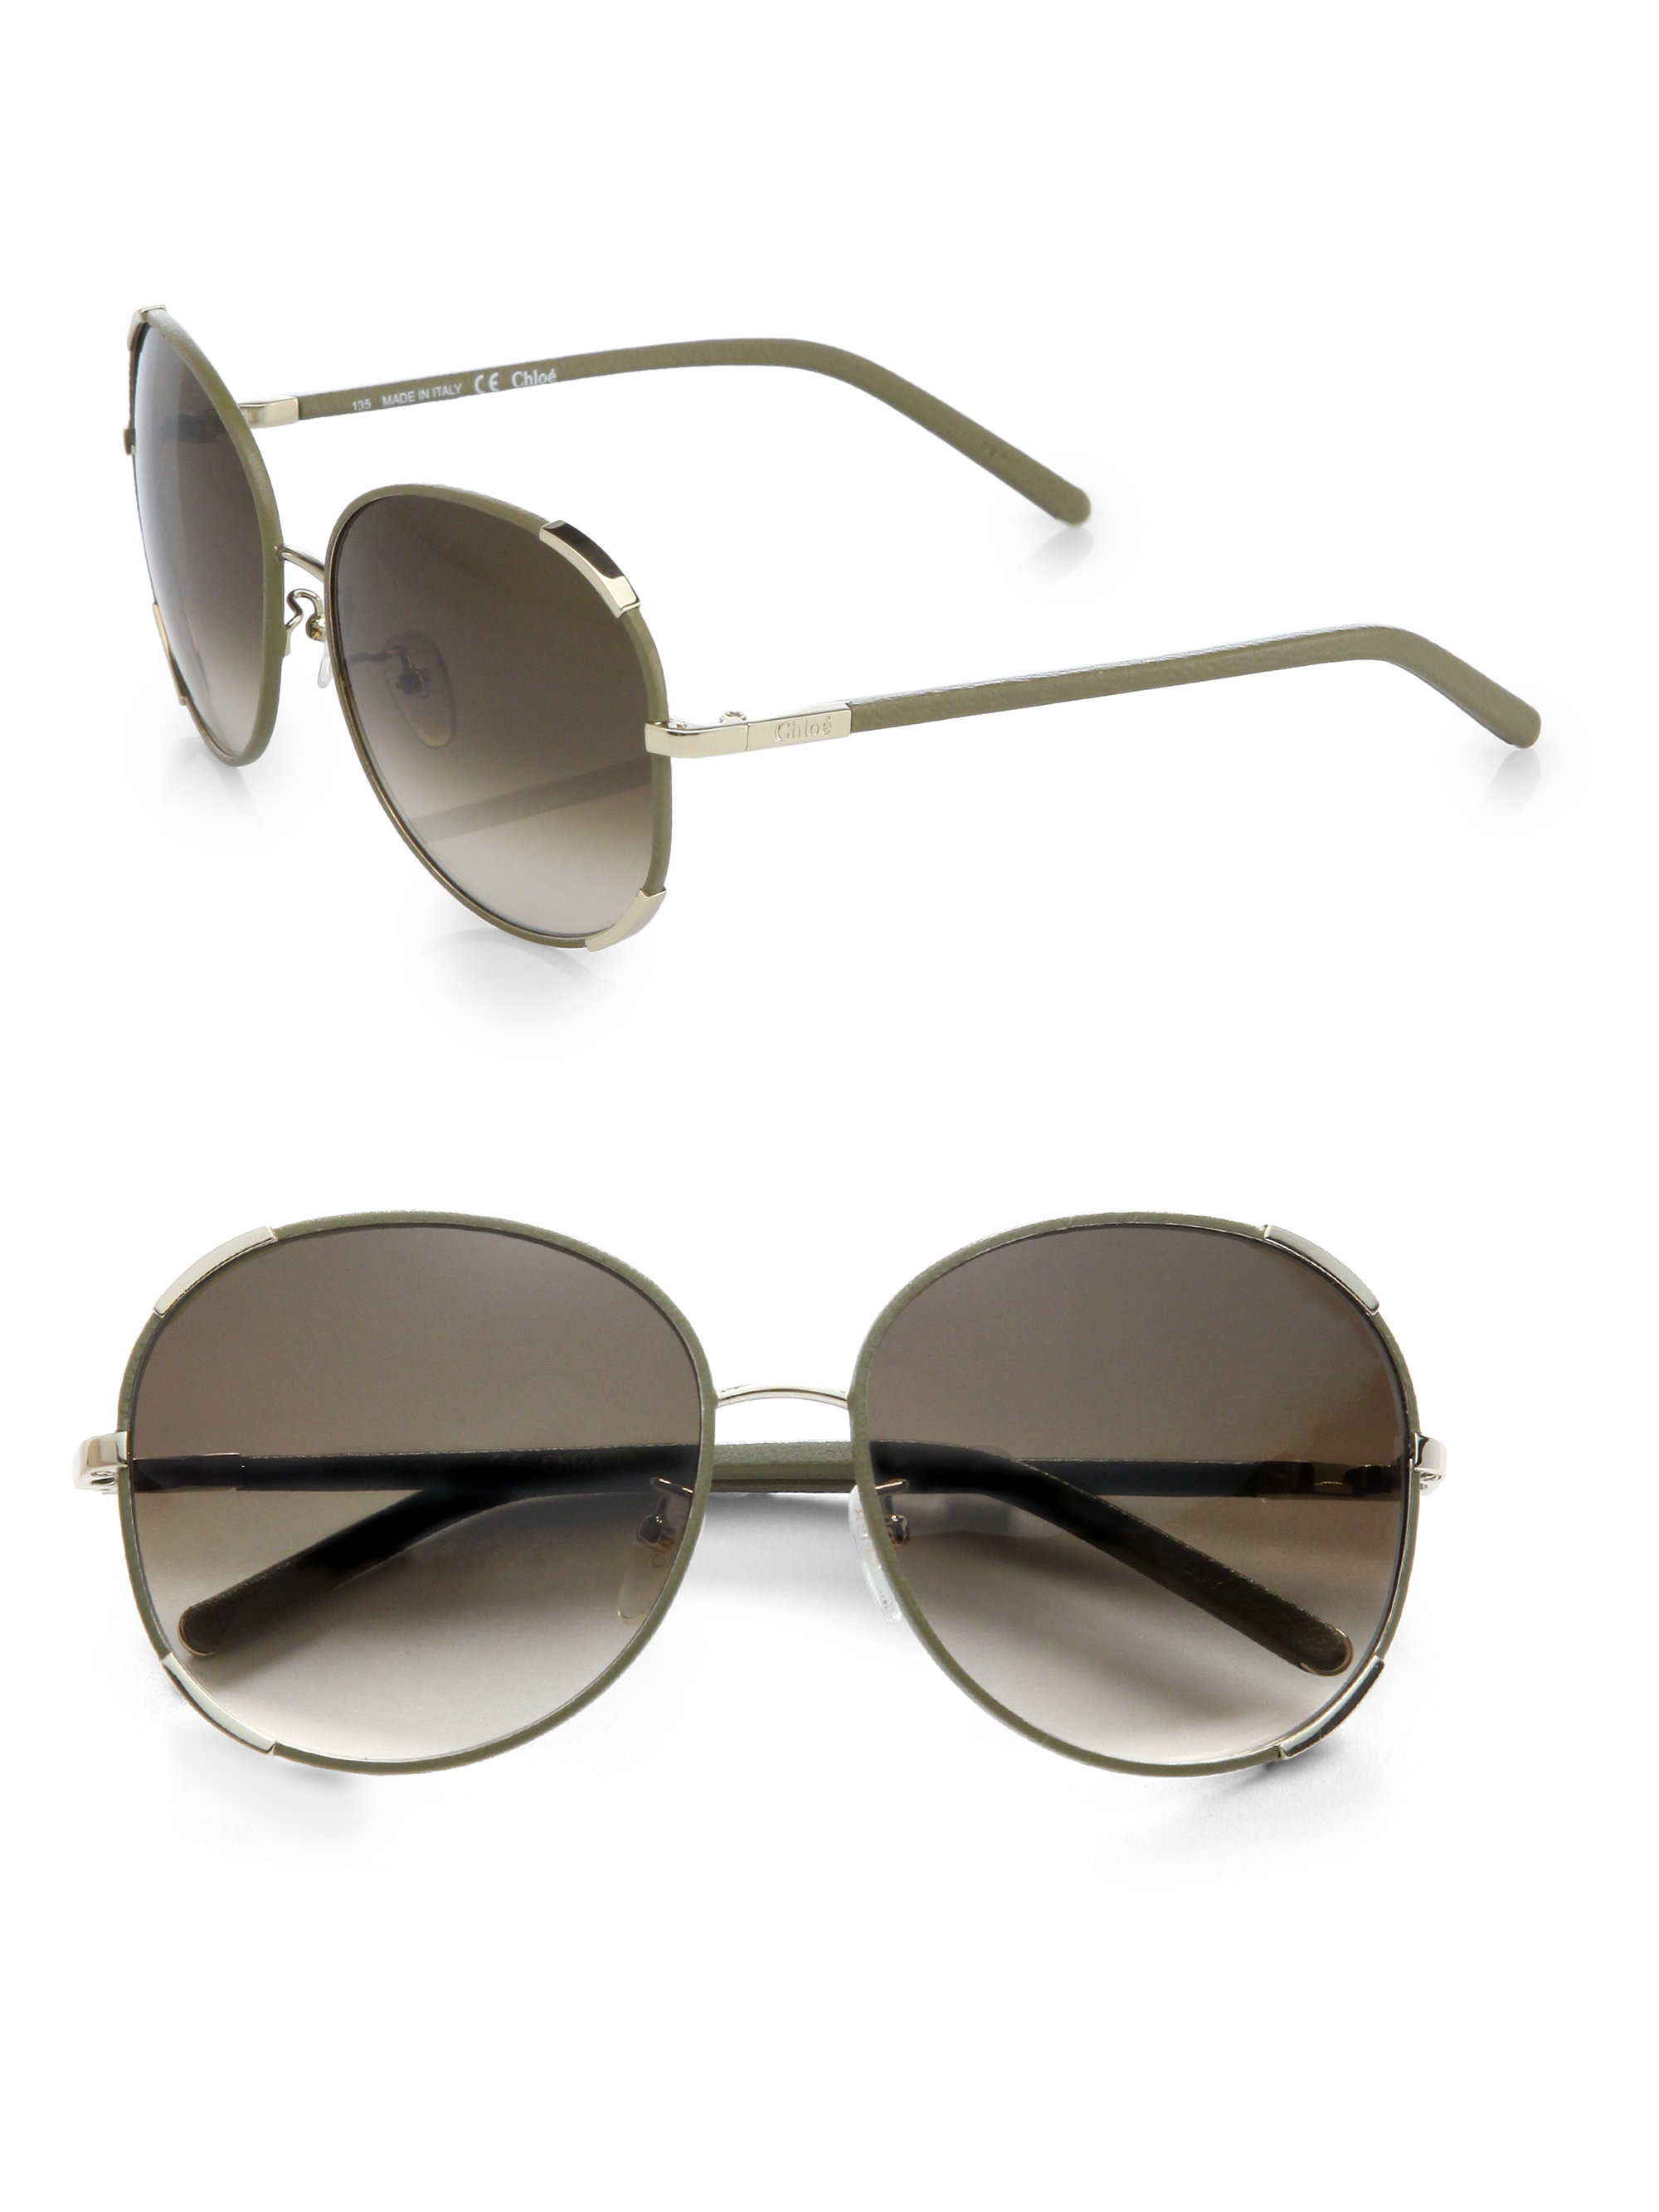 6f5ecd32887b Chloe Square Aviator Sunglasses